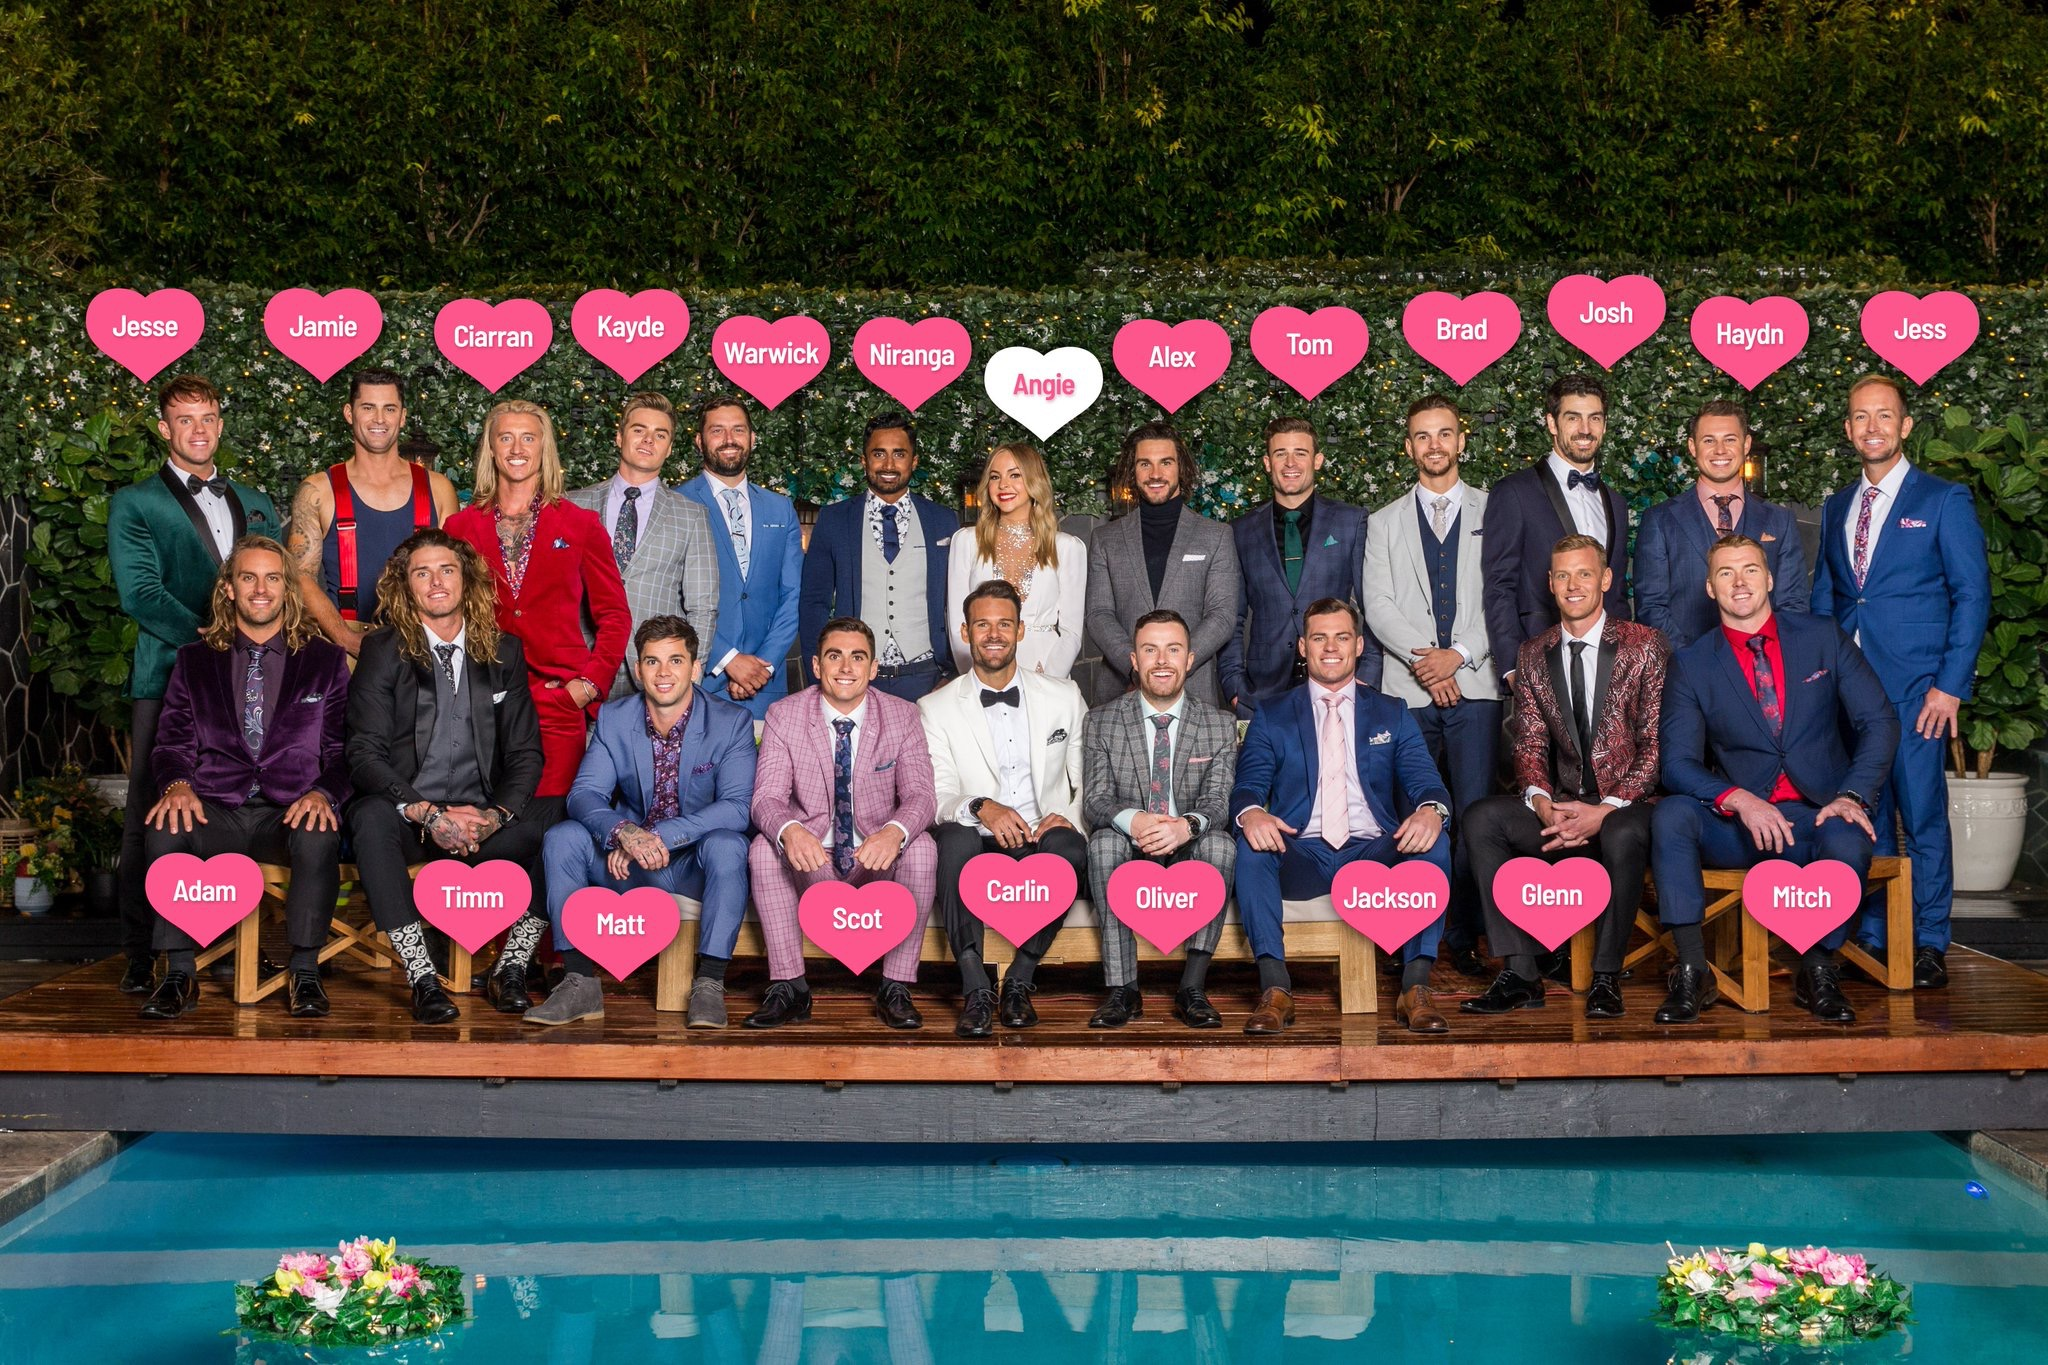 Bachelorette: End is nigh